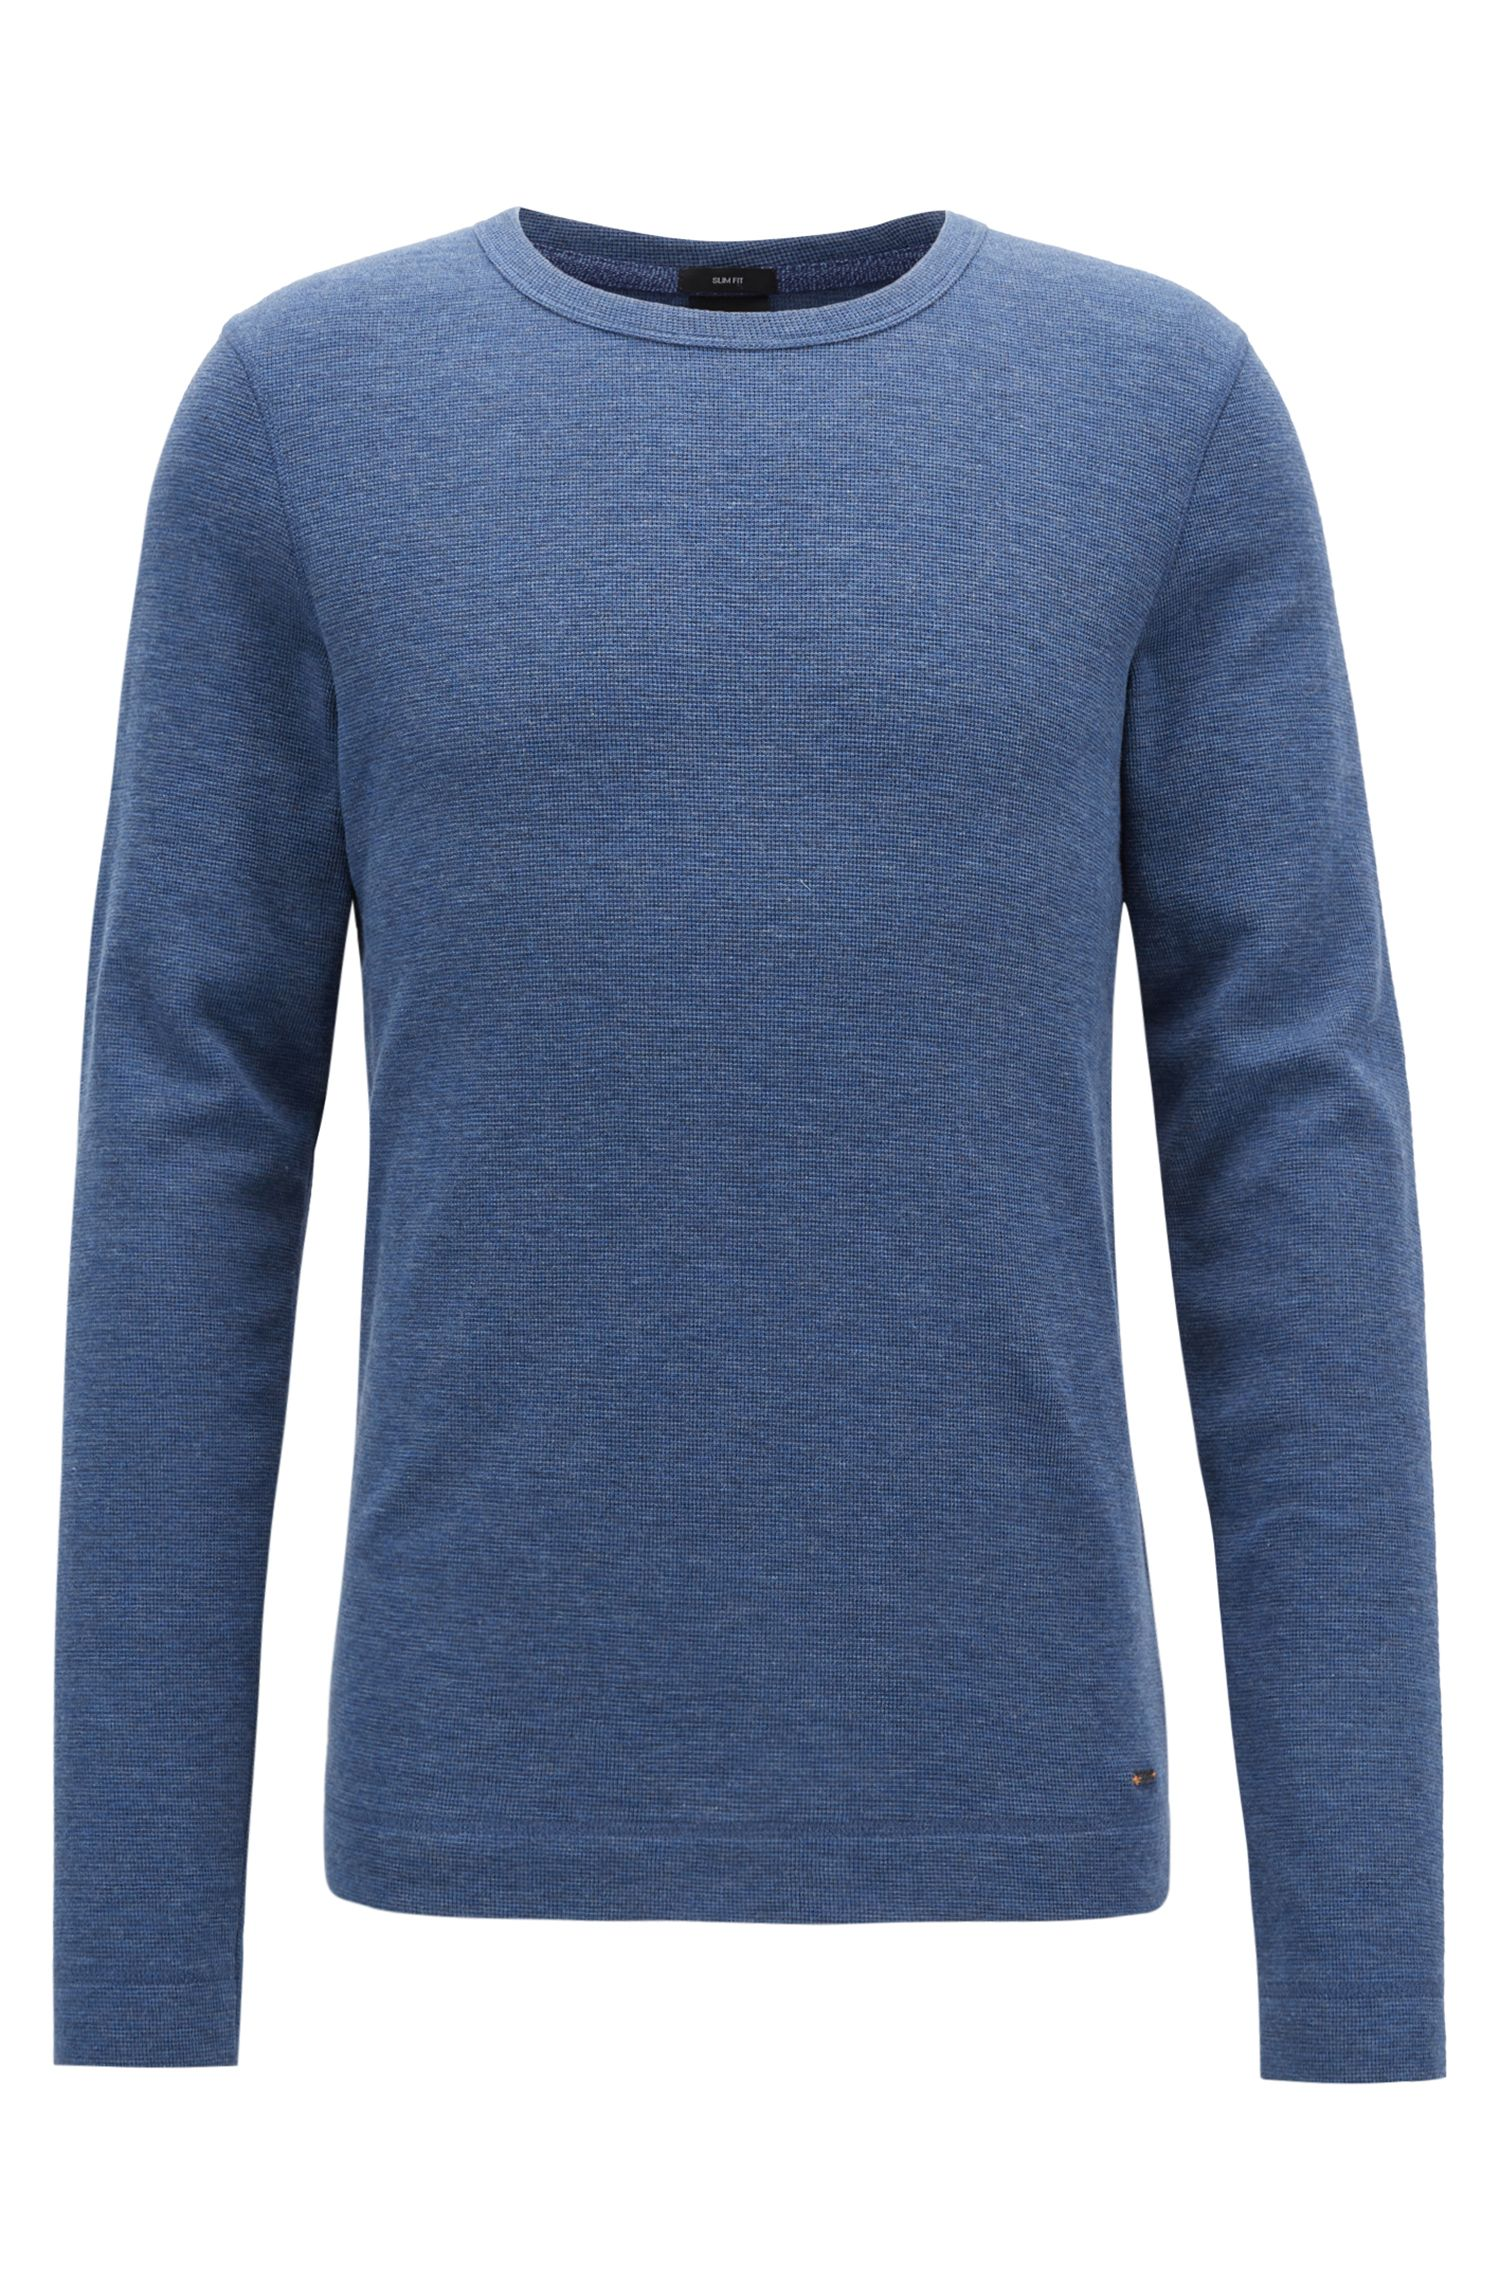 Slim-fit long-sleeved T-shirt in heathered cotton, Blue